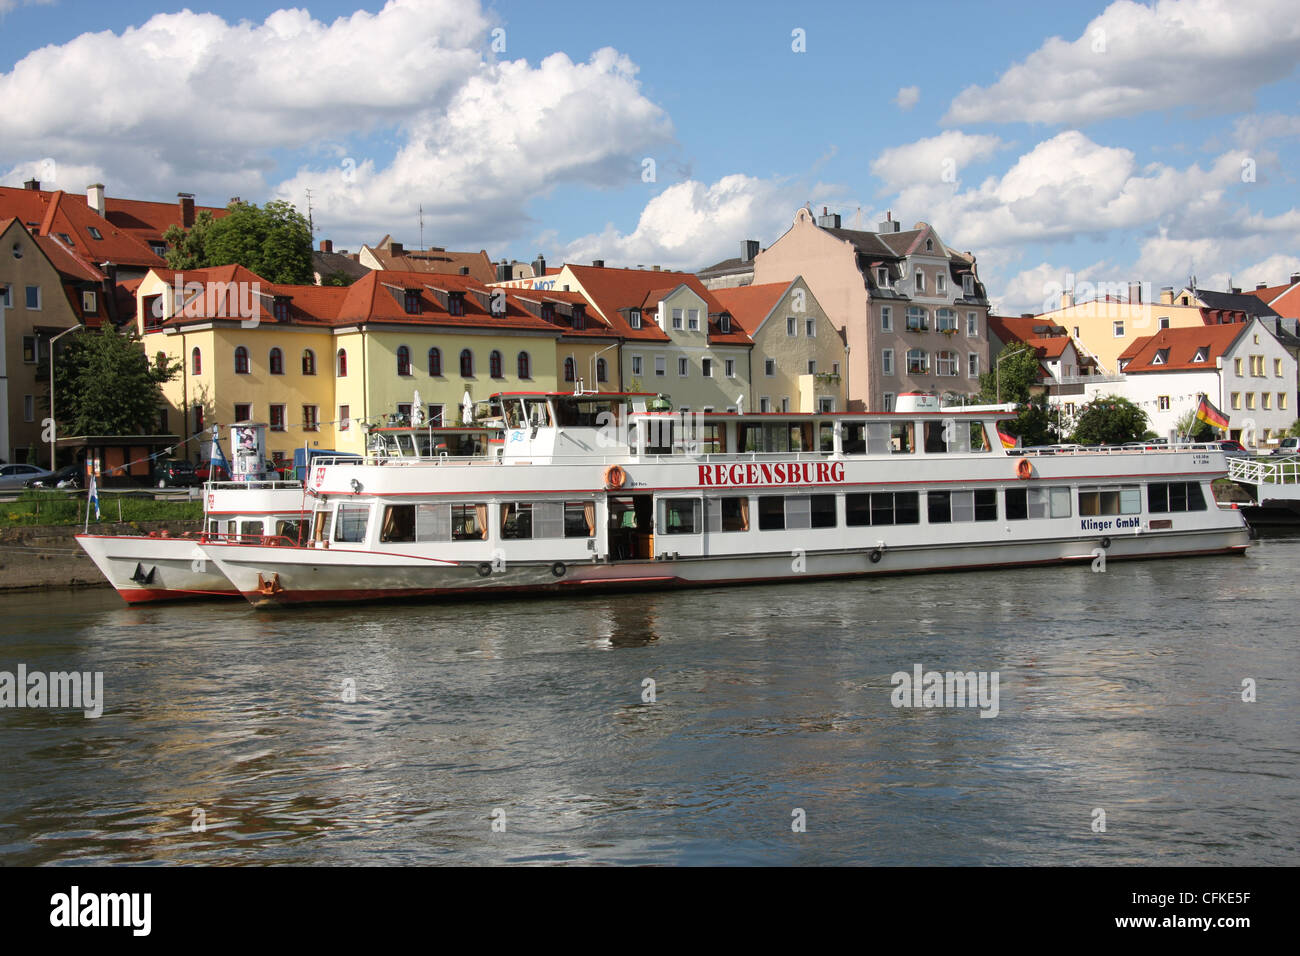 the regensburg river cruise boat moored on the danube river at stock photo royalty free image. Black Bedroom Furniture Sets. Home Design Ideas